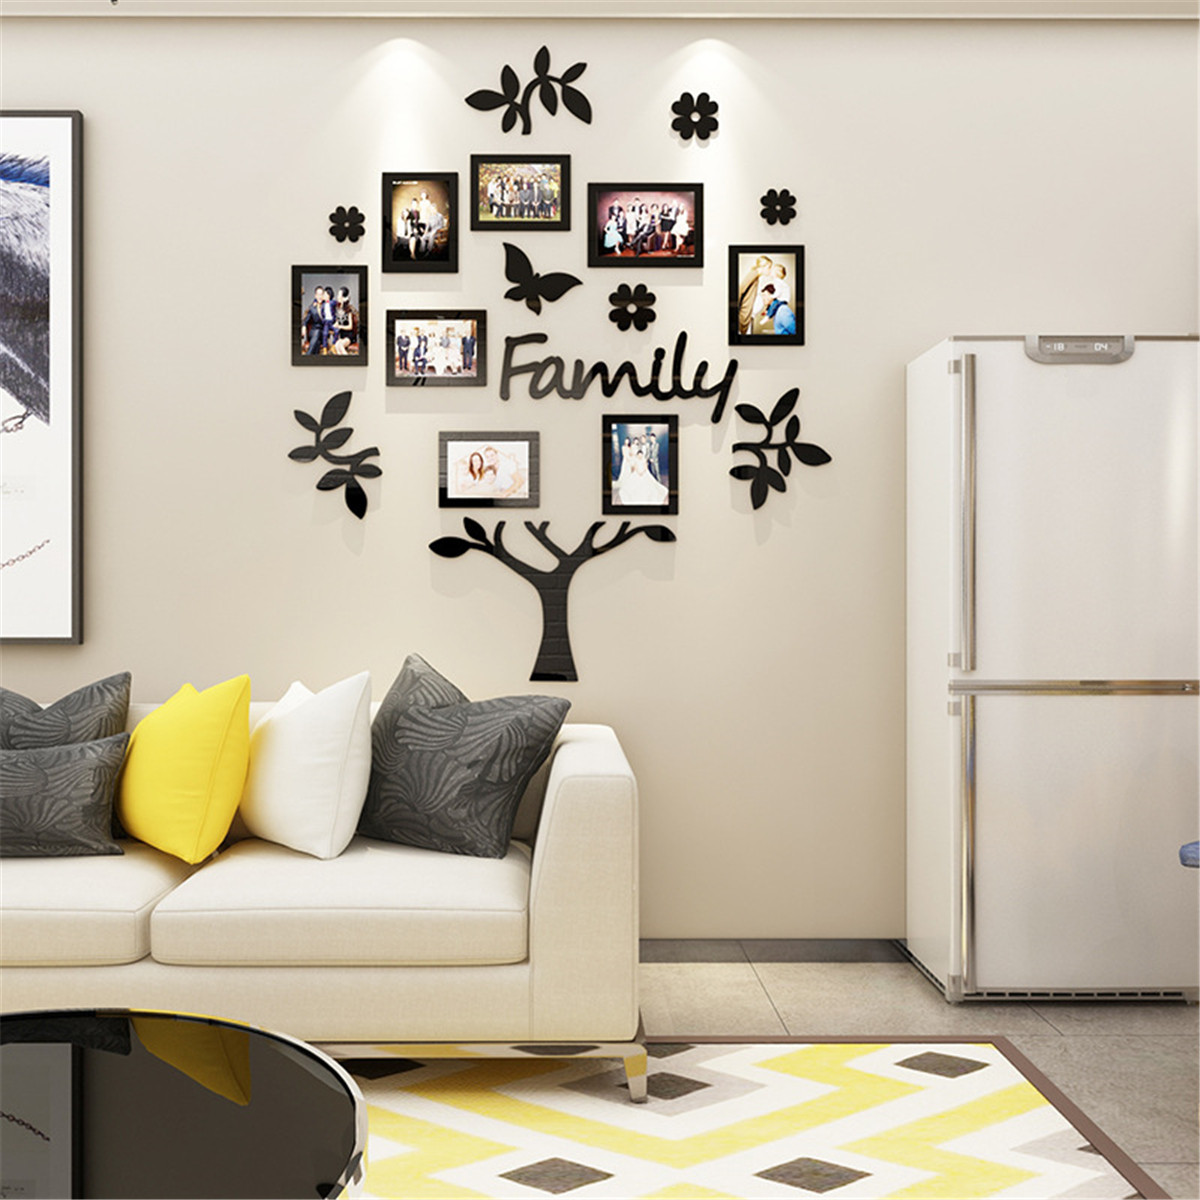 3D Acrylic Photo Frames Family Tree Photo Frame Removable